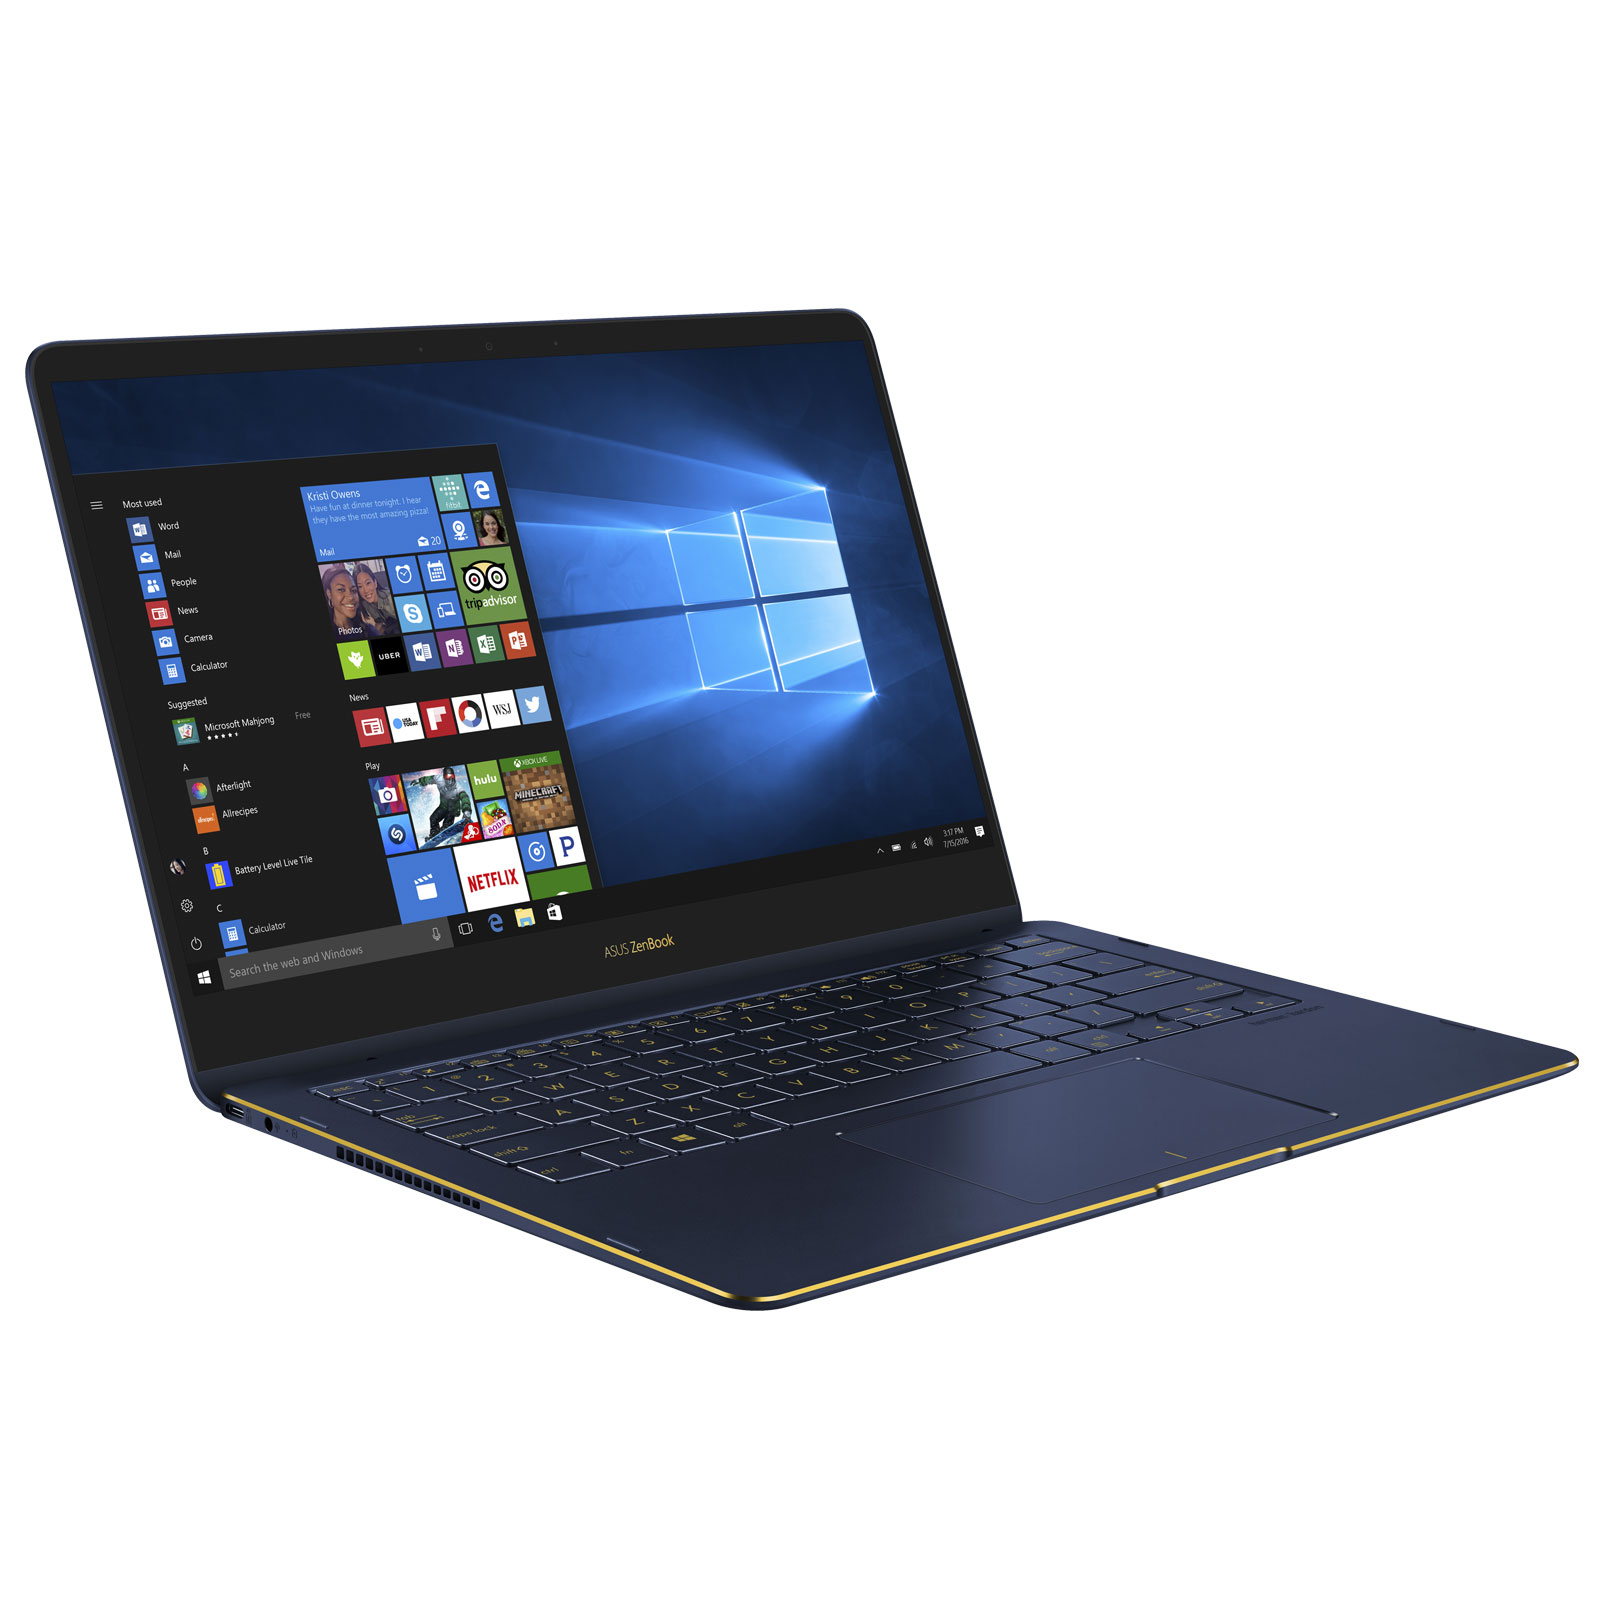 asus zenbook flip s u7r16512 b bleu pc portable asus sur. Black Bedroom Furniture Sets. Home Design Ideas